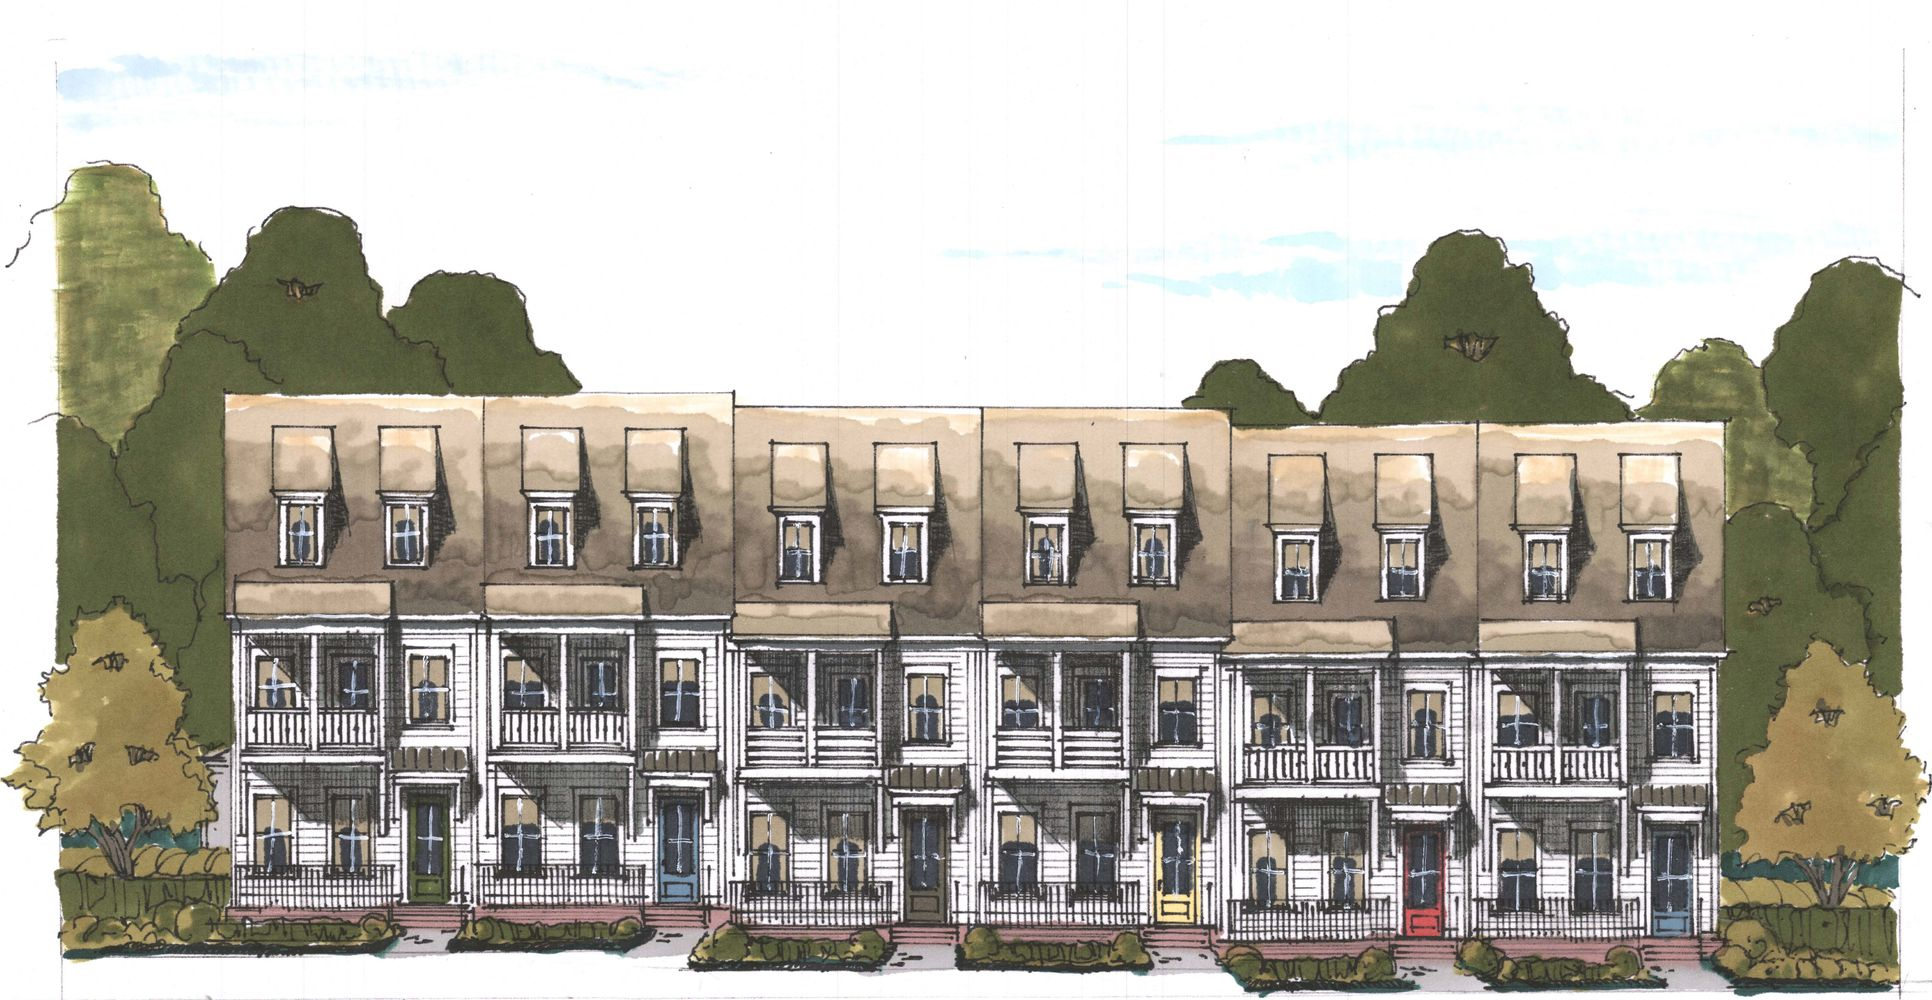 The Alston:Elevation drawing subject to changes, errors and omissions